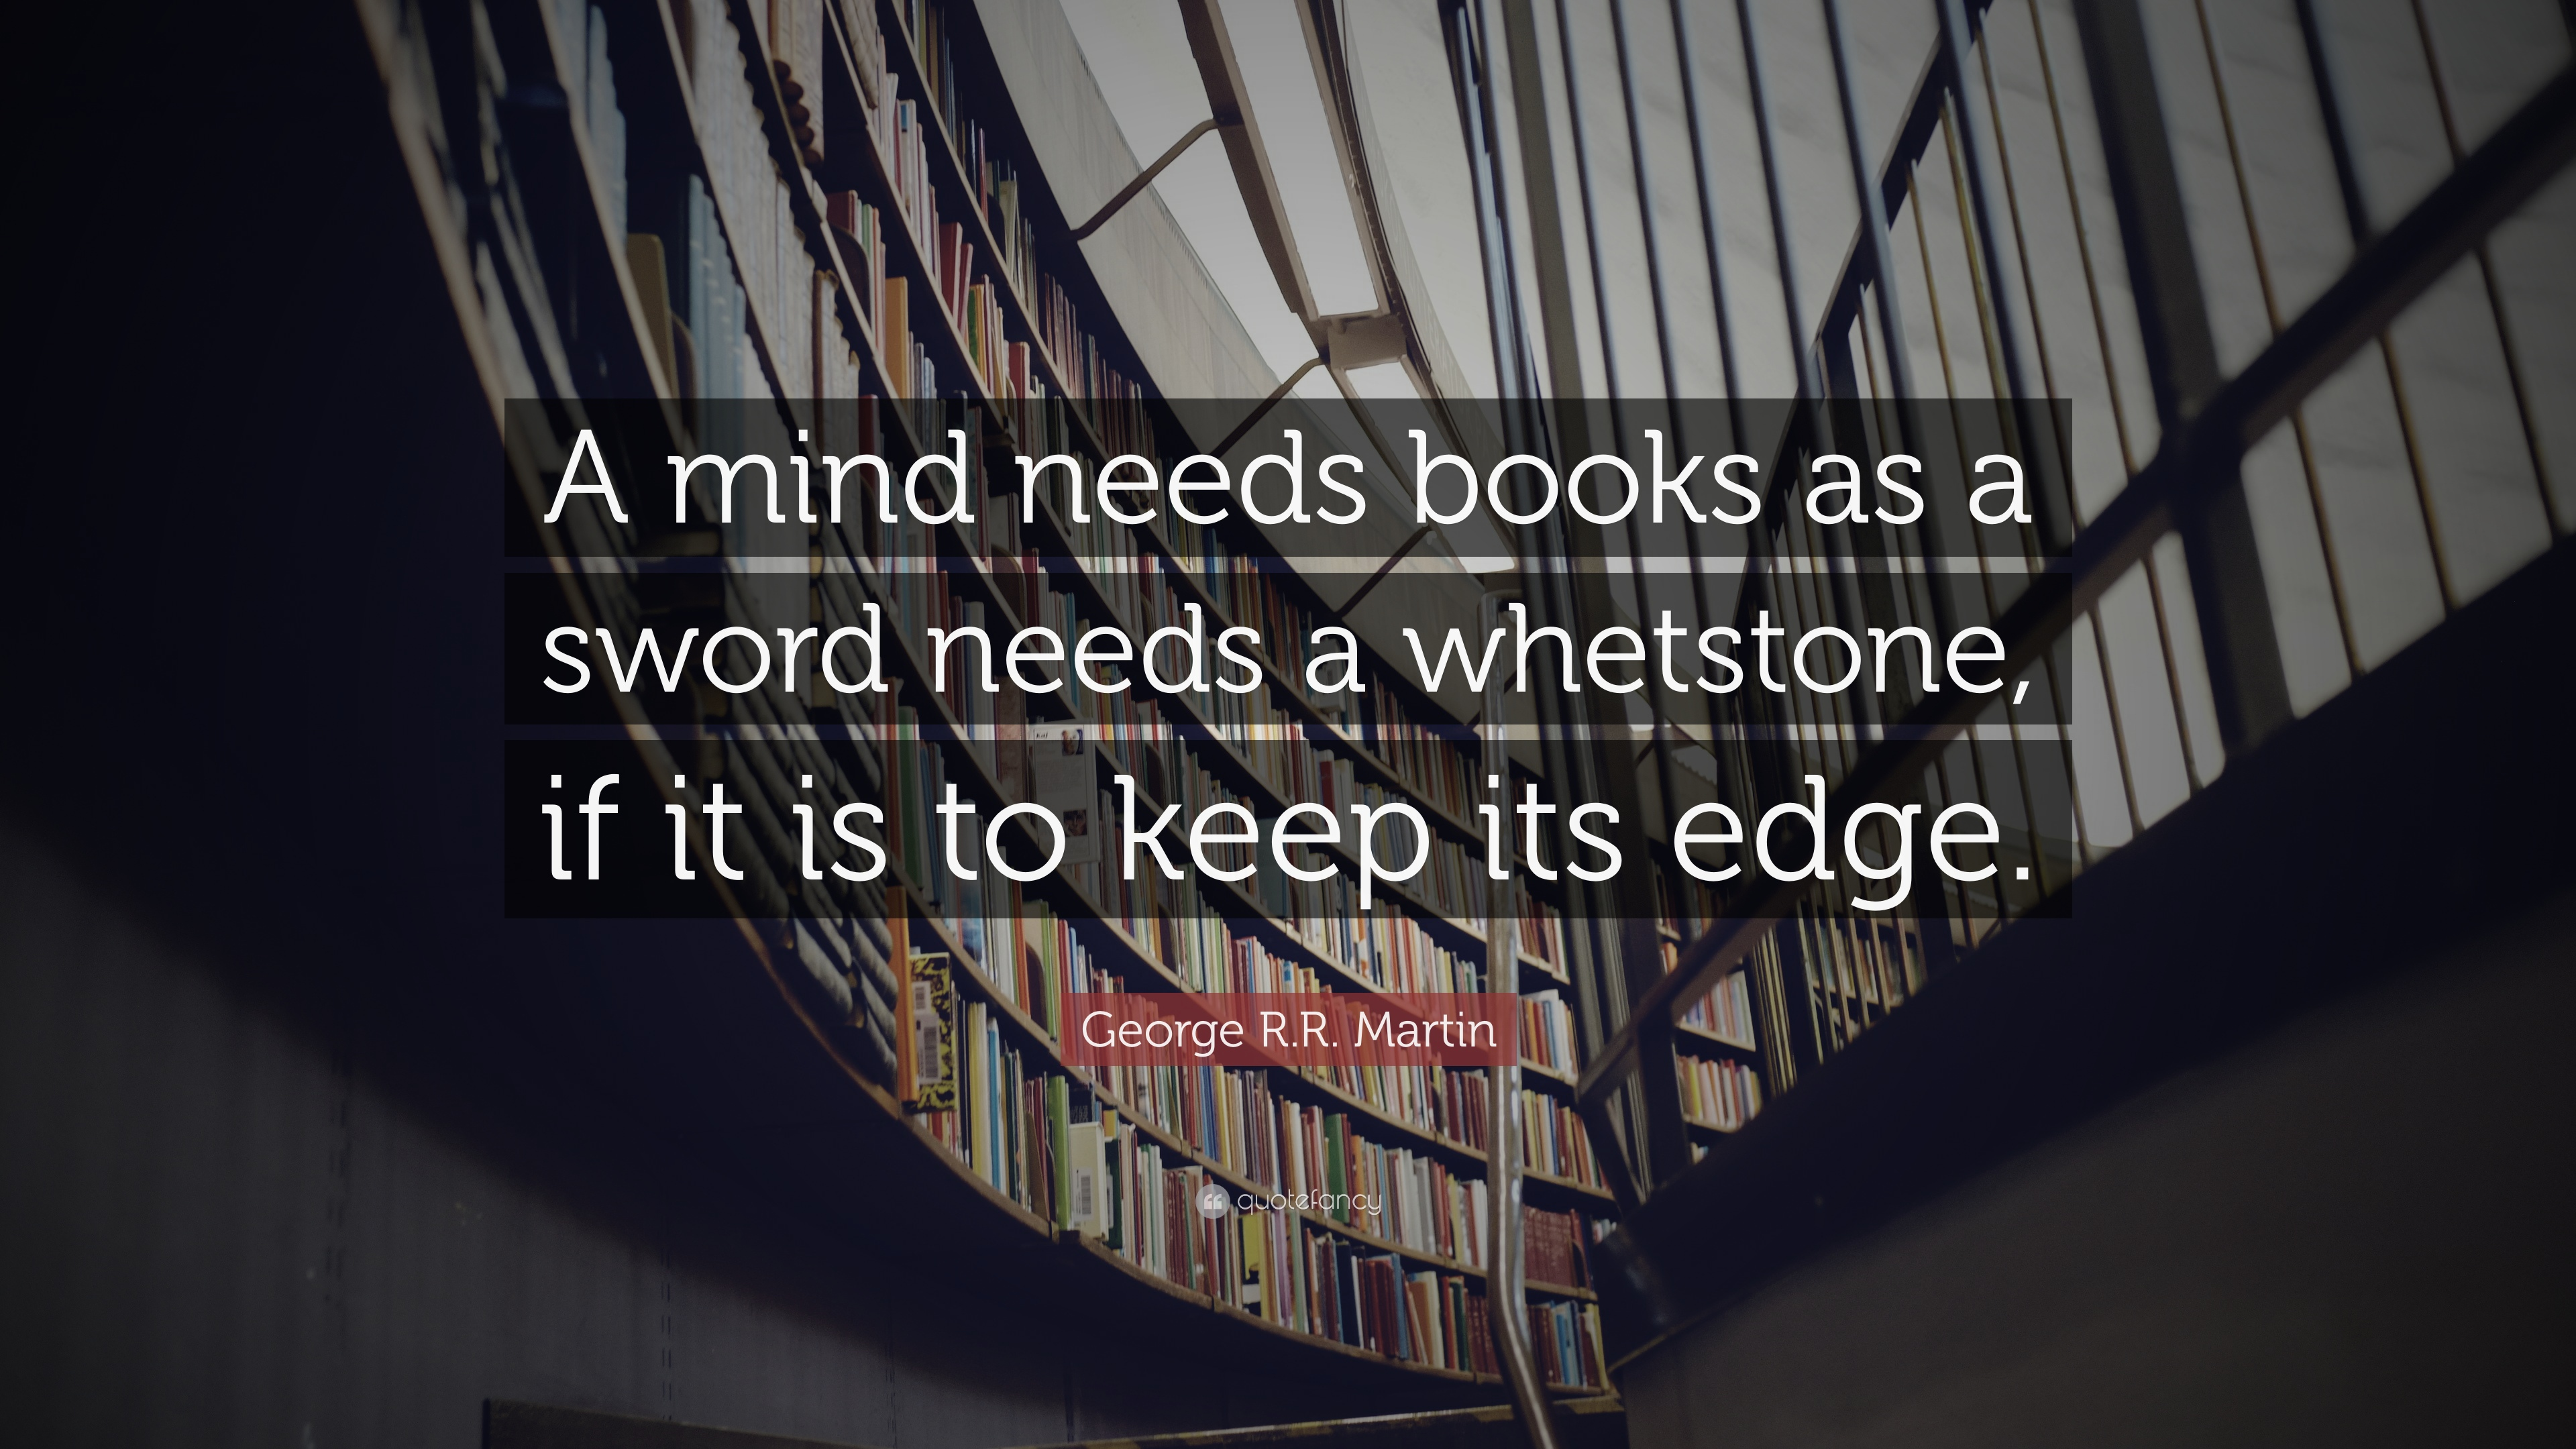 Roald Dahl Quotes Wallpaper George R R Martin Quote A Mind Needs Books As A Sword